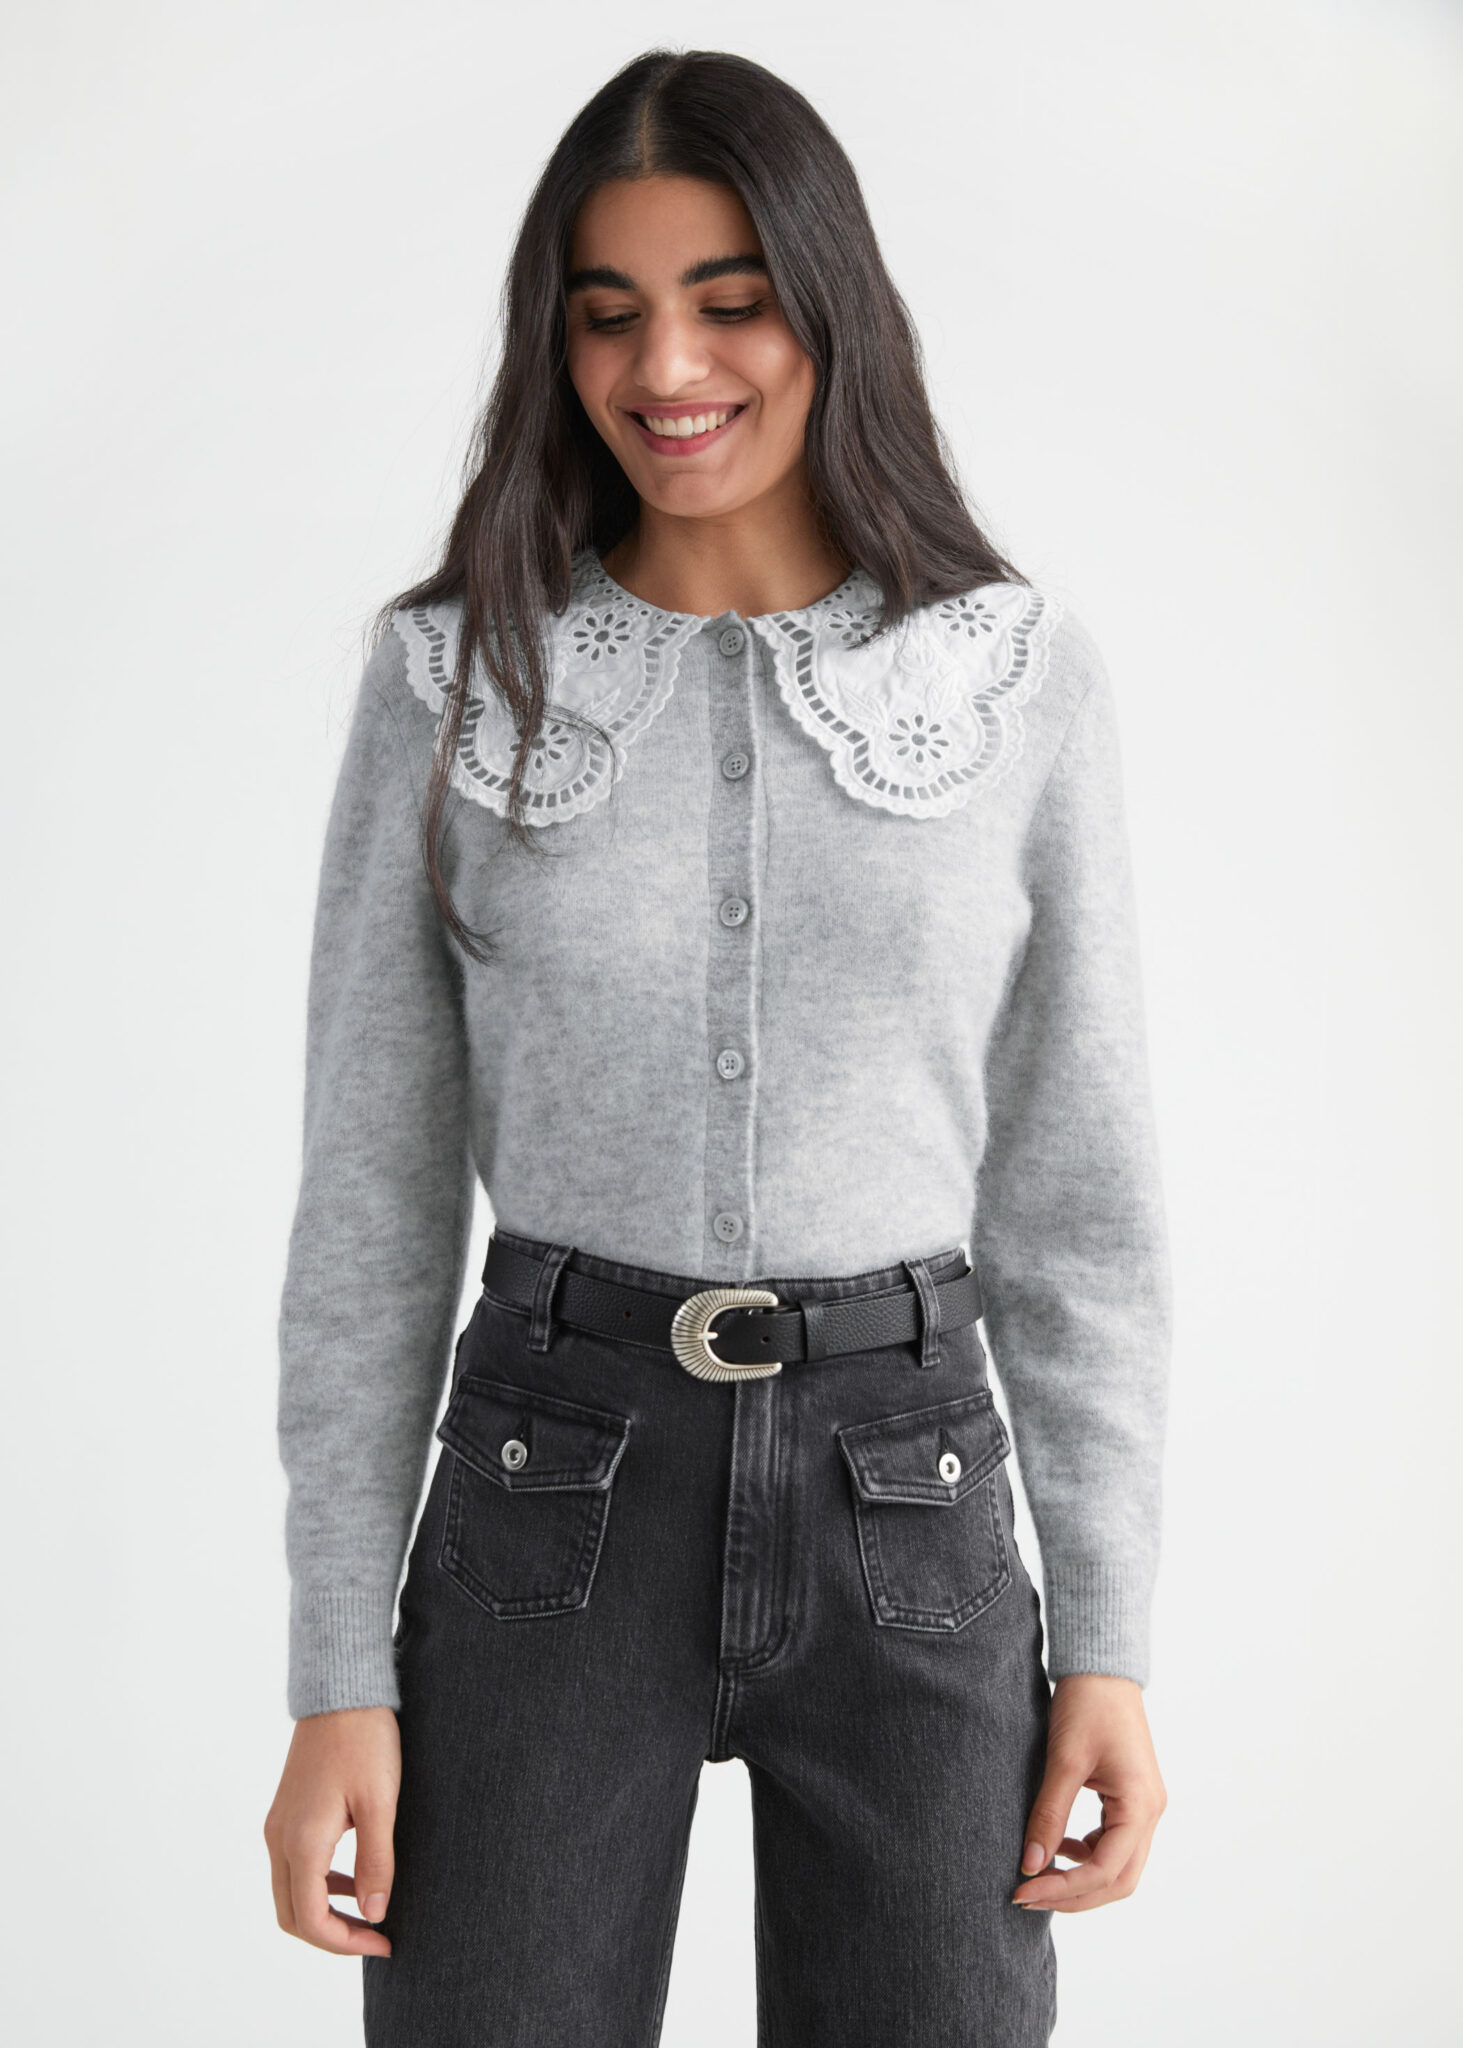 Embroidered Statement Collar Knit Cardigan, & Other Stories, £95.00